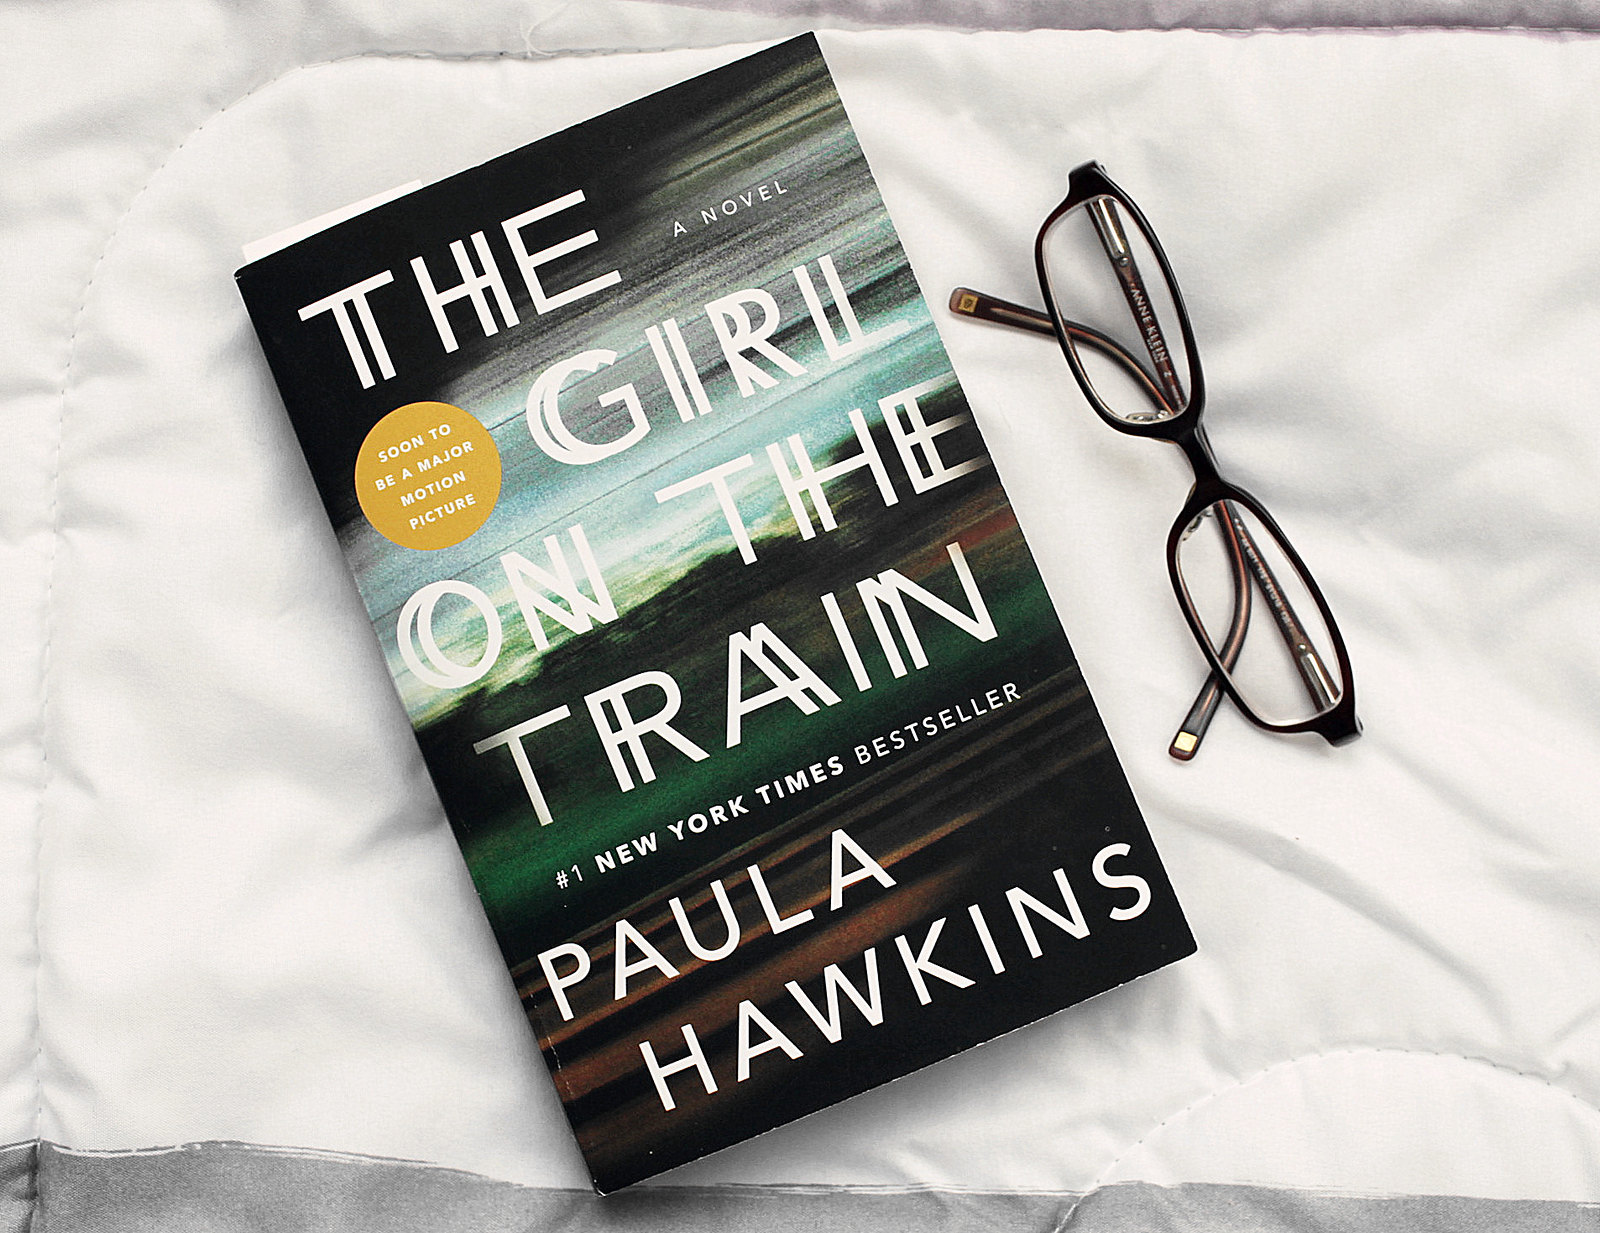 3435-the-girl-on-the-train-reading-books-lifestyle-elizabeeetht-clothestoyouuu